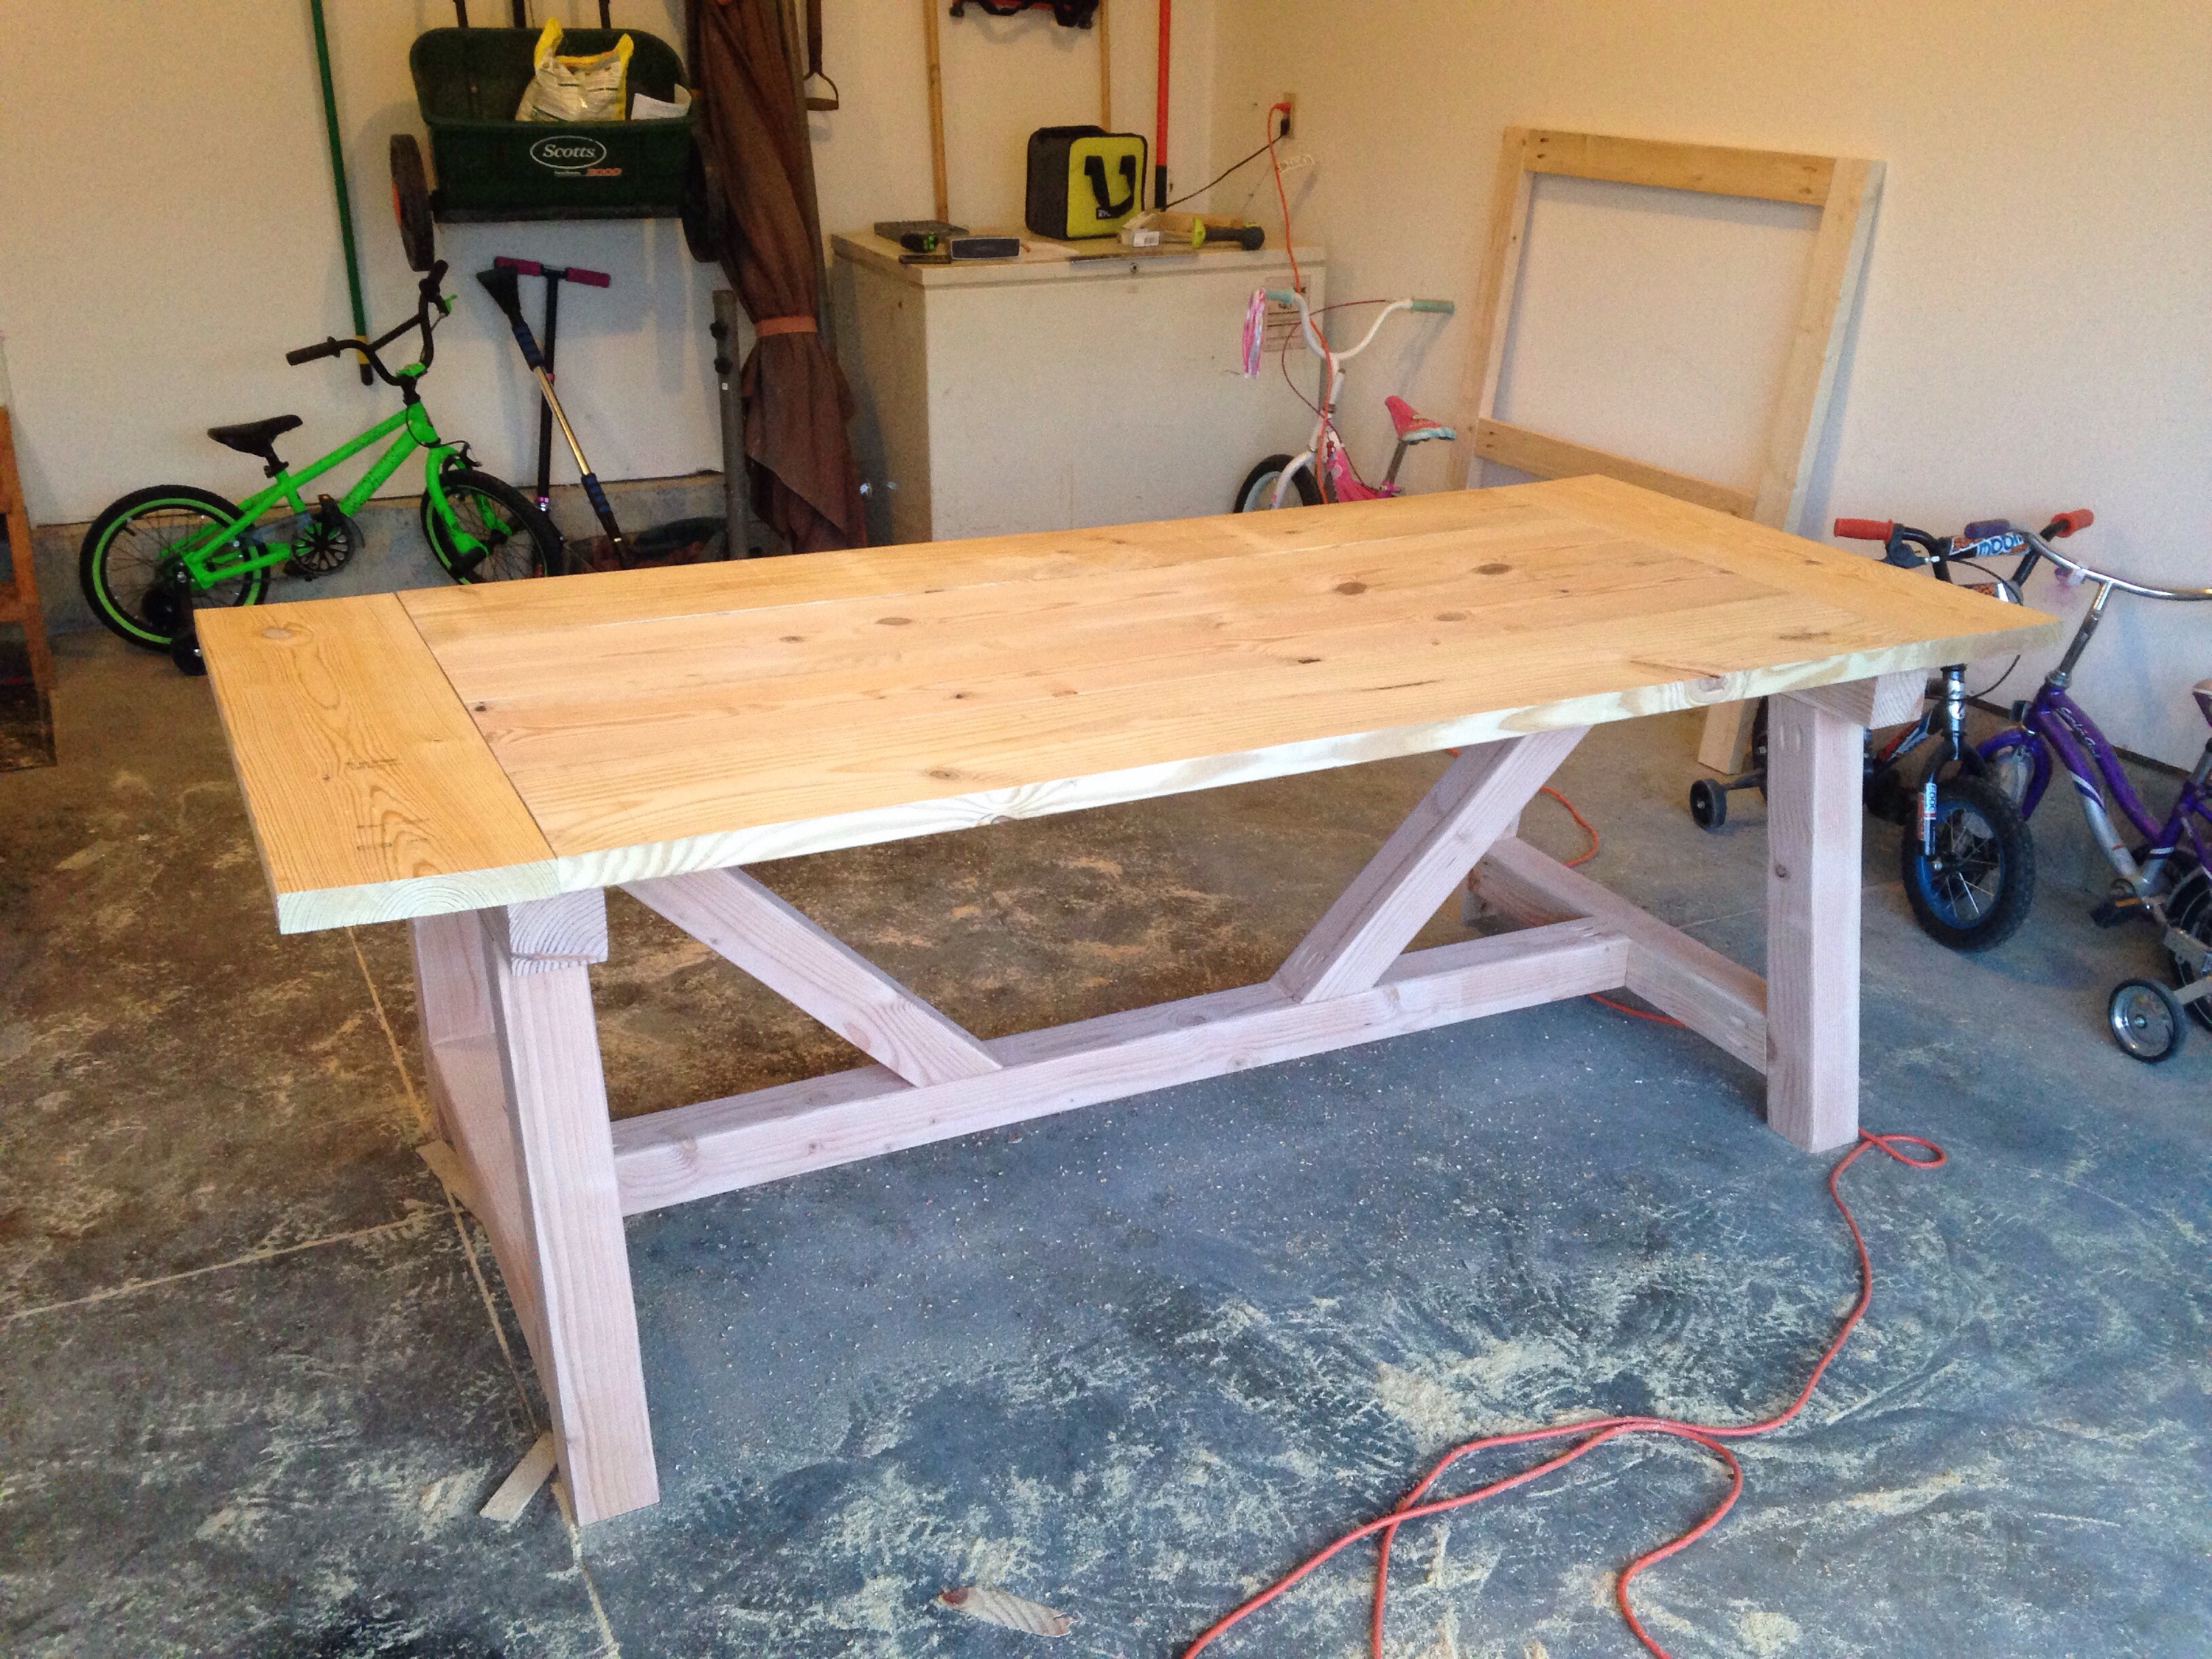 The Table Came Together Quickly But Sanding And Staining Took Quite Awhile!